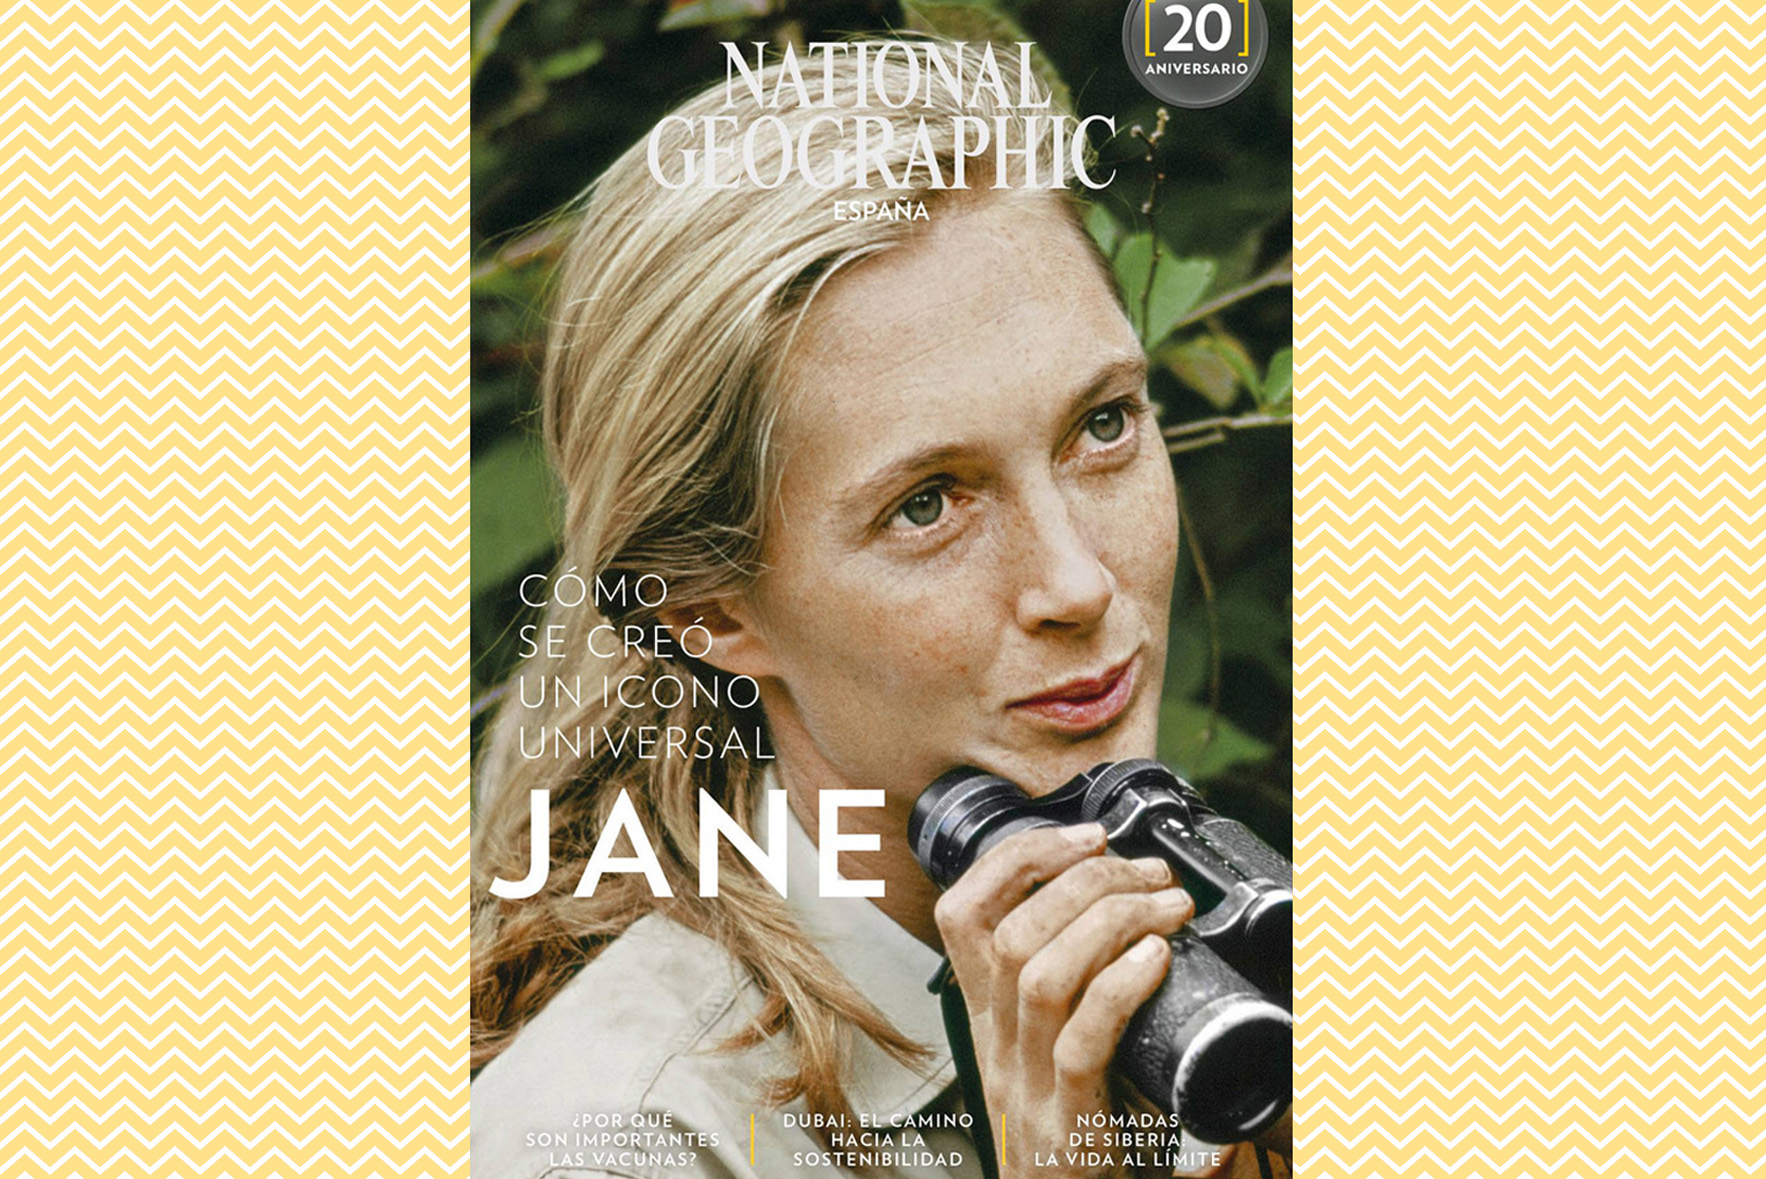 Biography of Dr. Jane Goodall